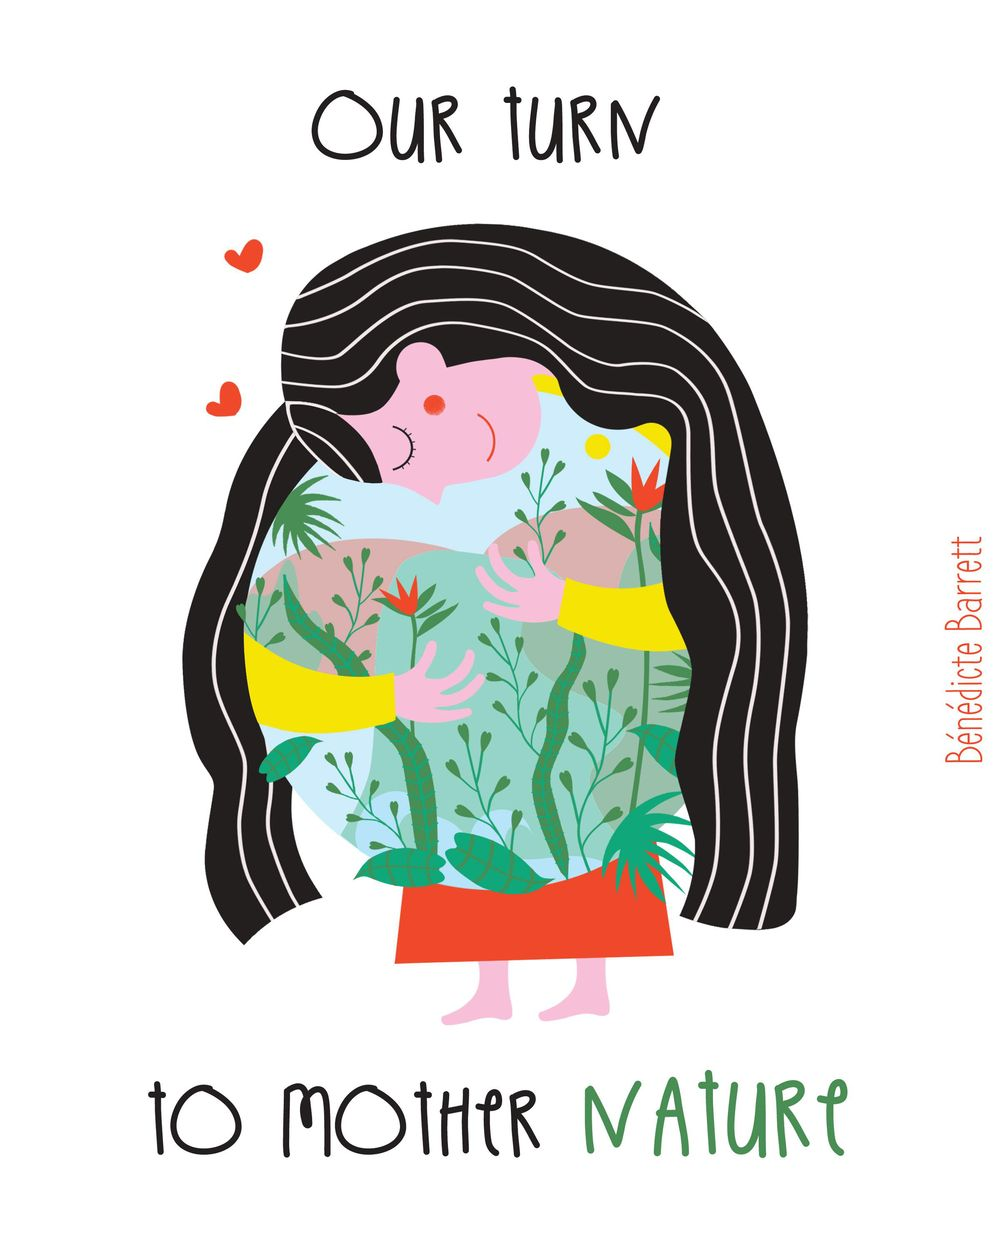 Our turn to mother nature - image 1 - student project